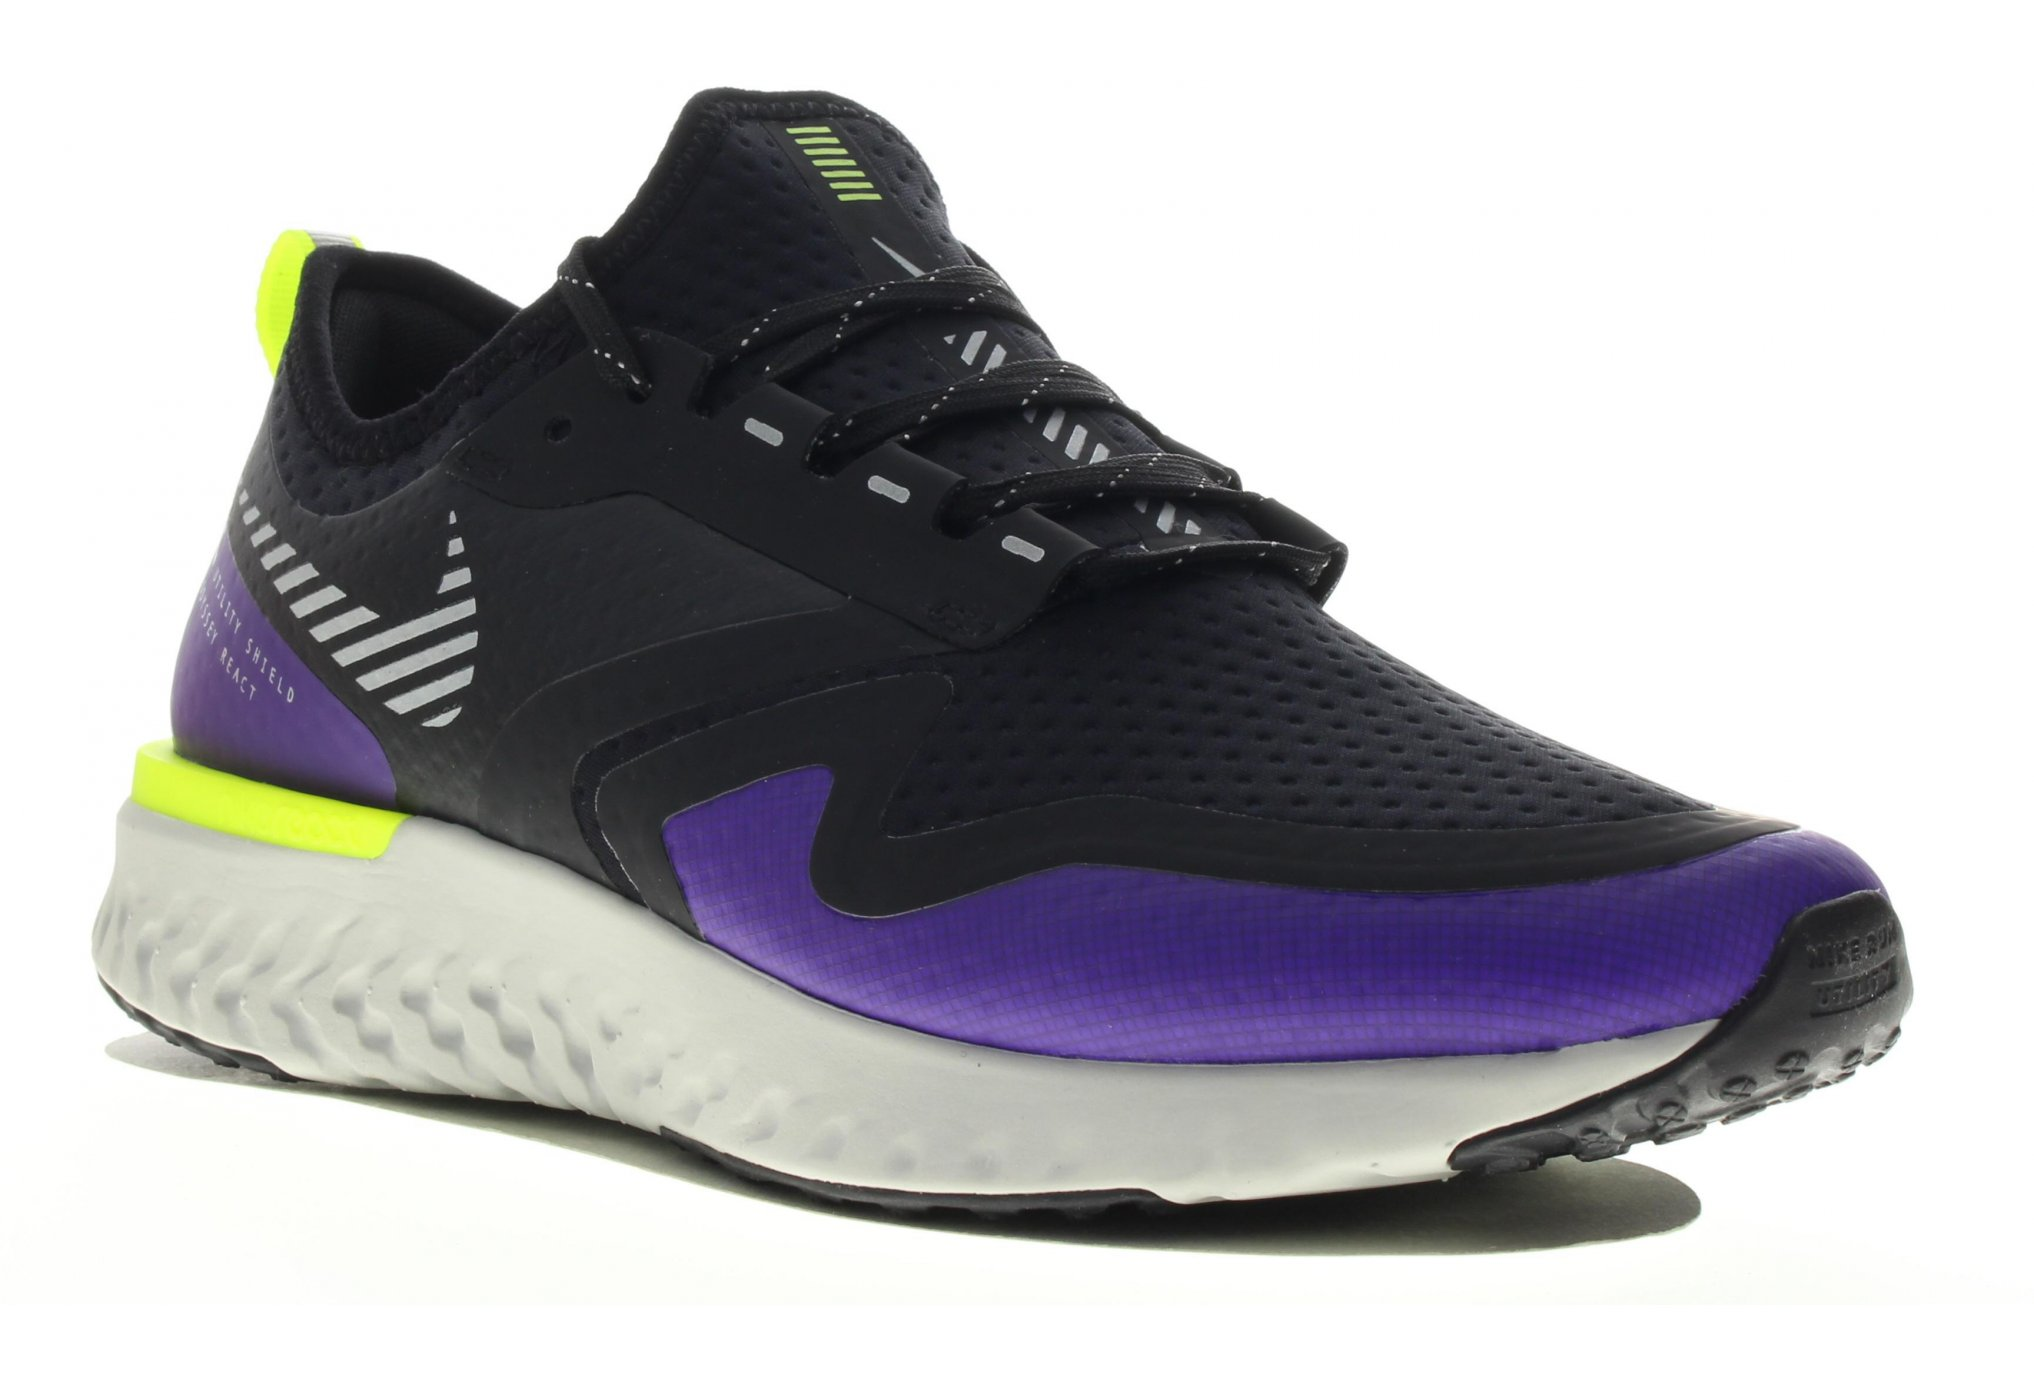 Nike Odyssey React 2 Shield Chaussures running femme